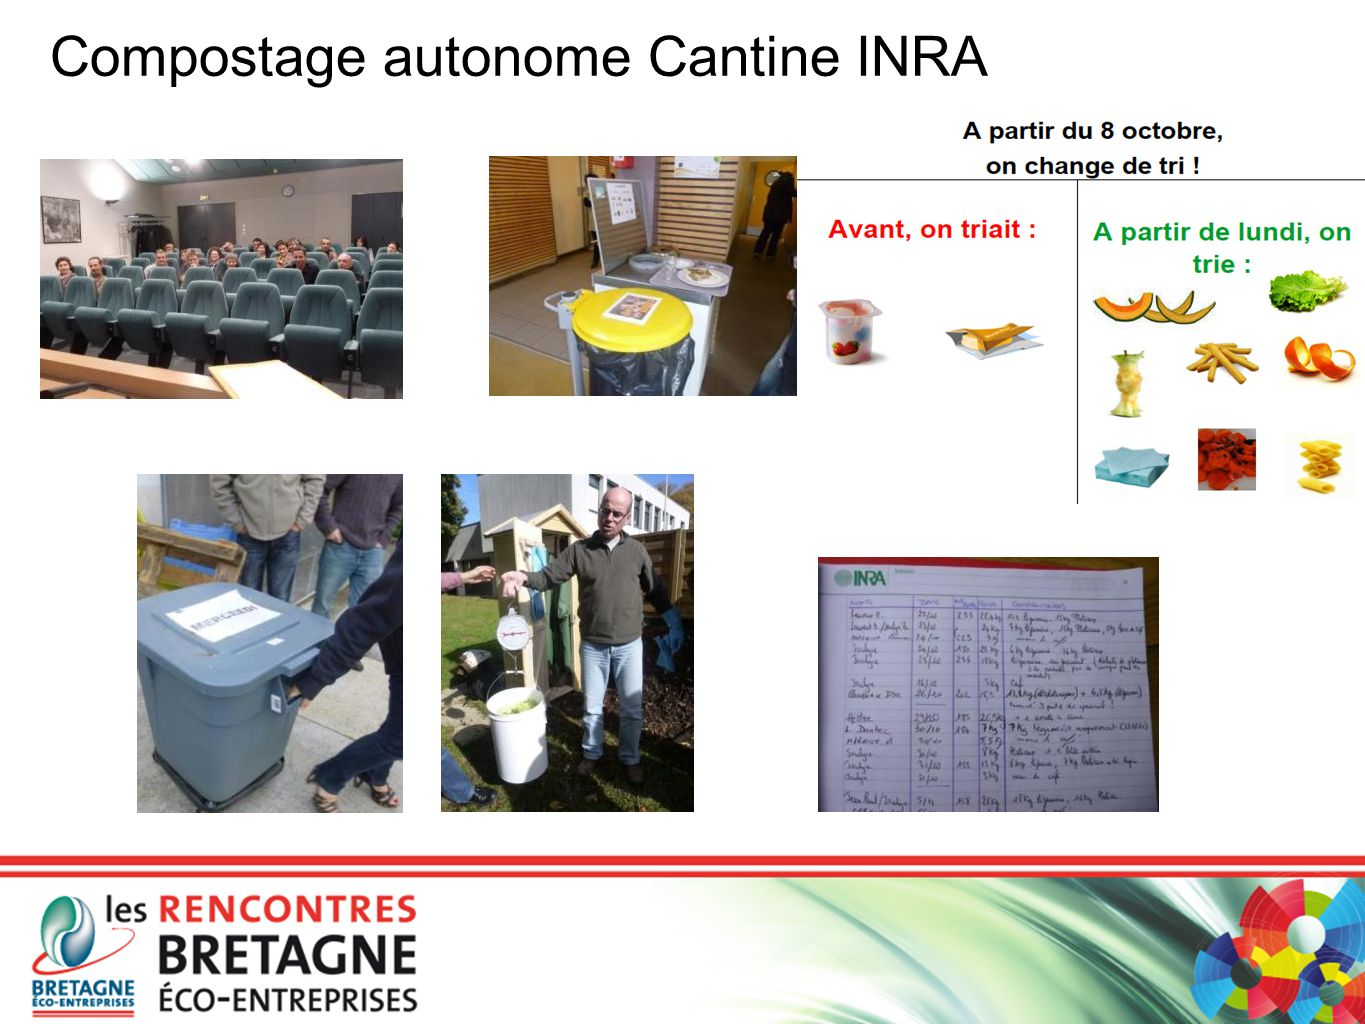 Compostage autonome Cantine INRA